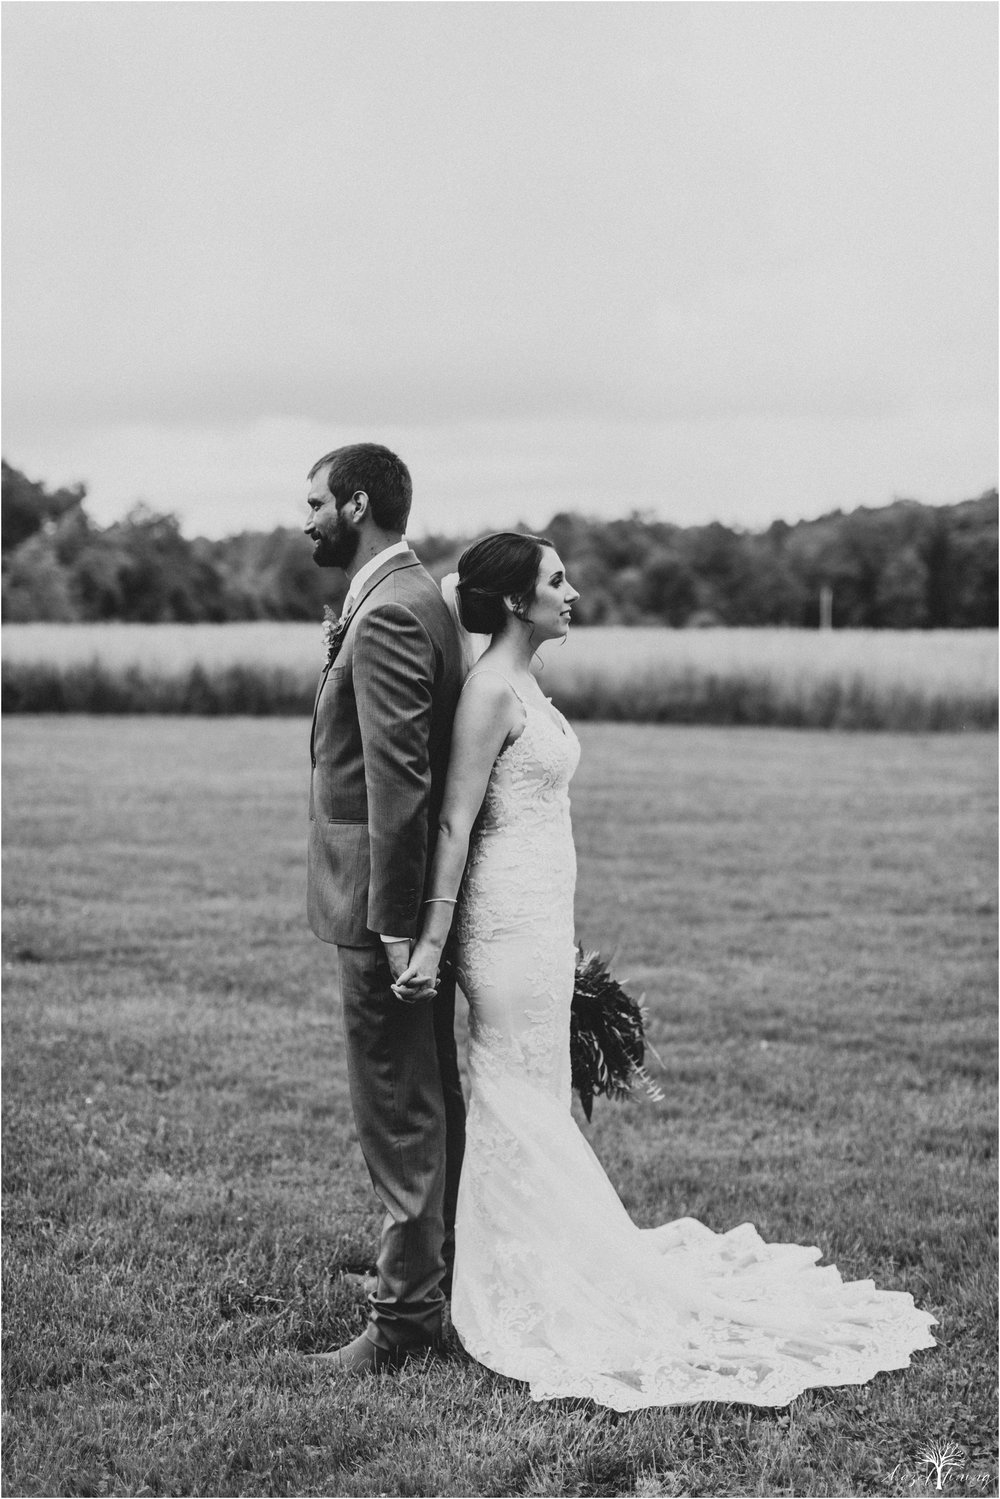 hazel-lining-travel-wedding-elopement-photography-lisa-landon-shoemaker-the-farm-bakery-and-events-bucks-county-quakertown-pennsylvania-summer-country-outdoor-farm-wedding_0092.jpg